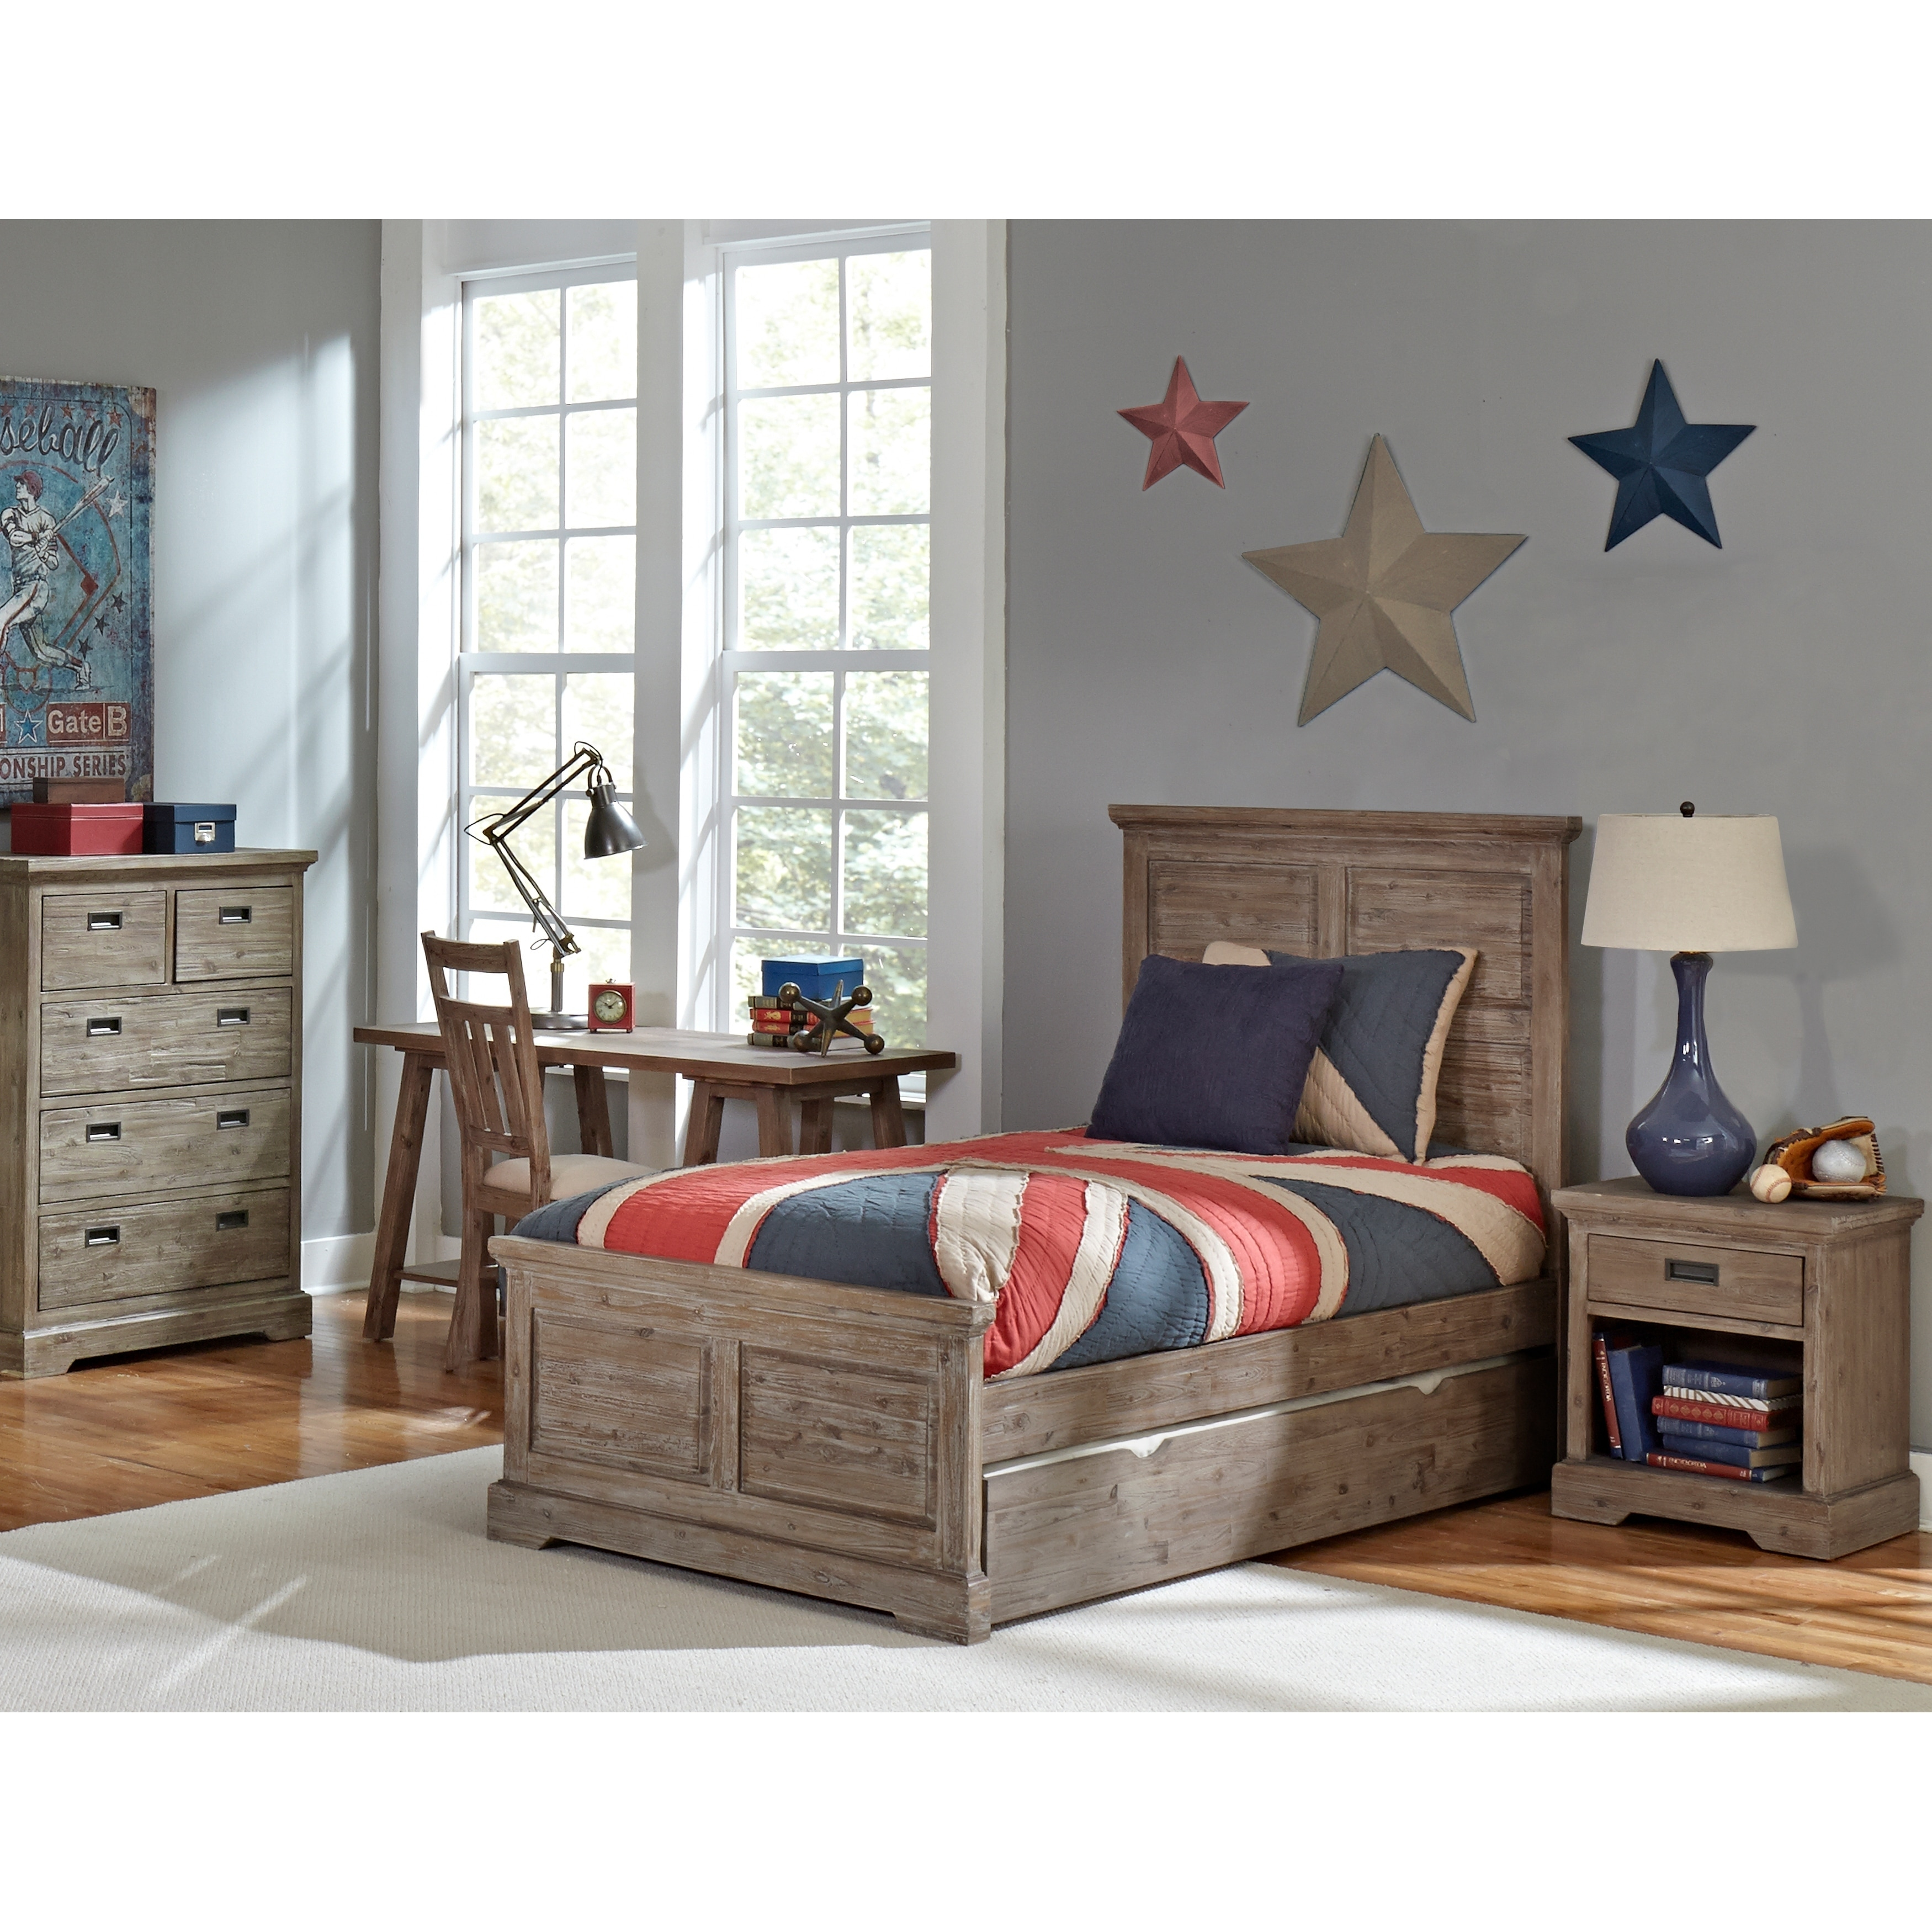 Hillsdale Oxford William Twin Panel Bed with Trundle, Cocoa